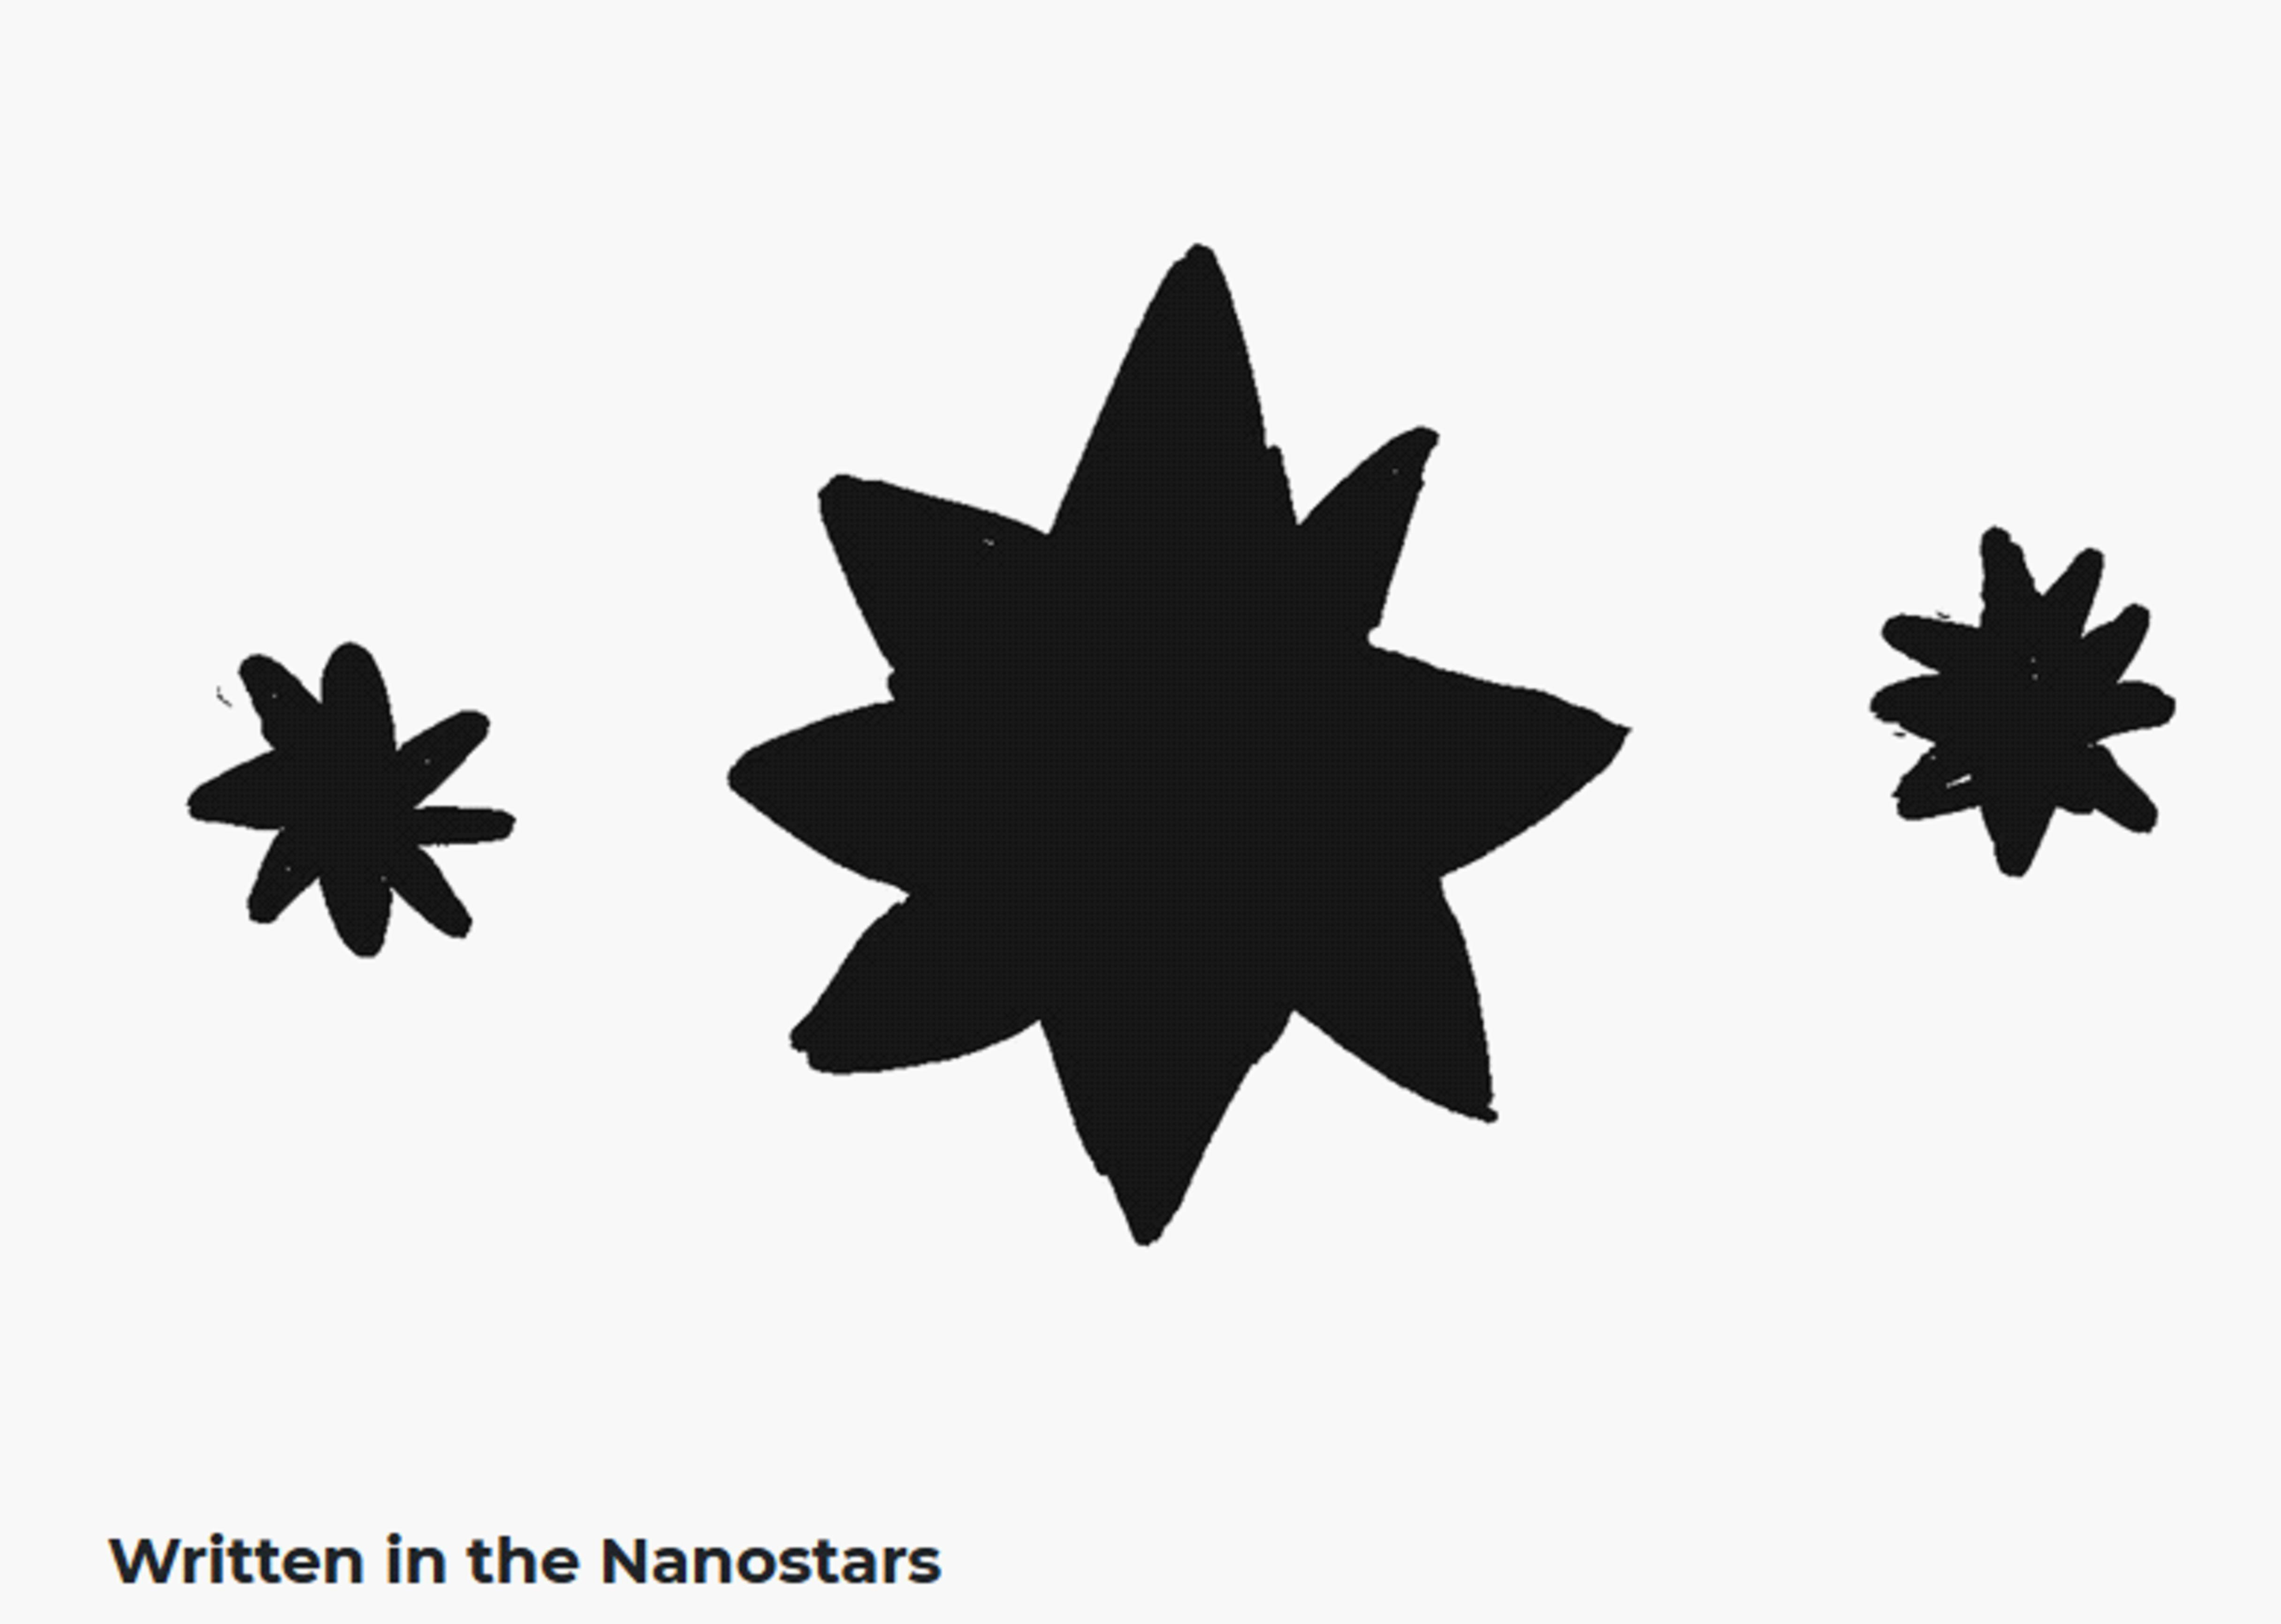 Written in the nanostars